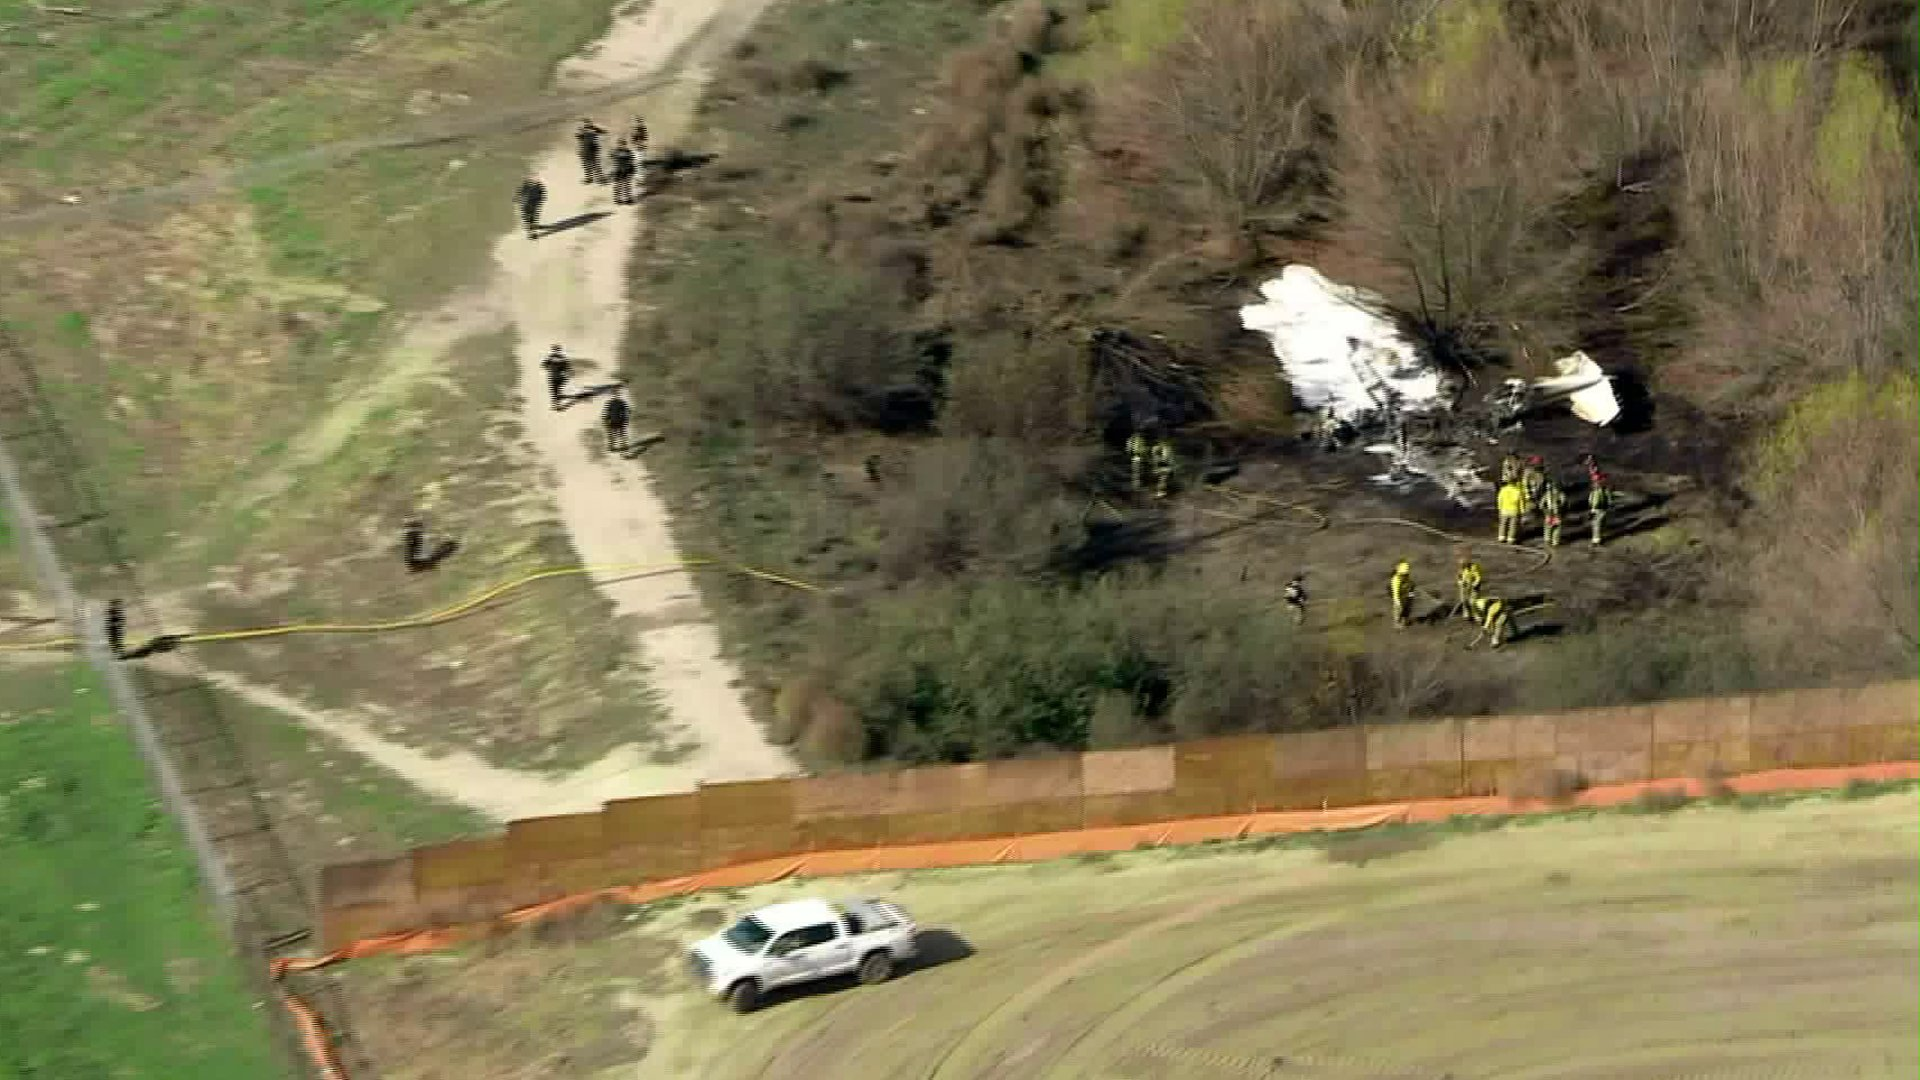 Firefighters respond to a plane crash in Corona on Jan. 22, 2020. (Credit: KTLA)